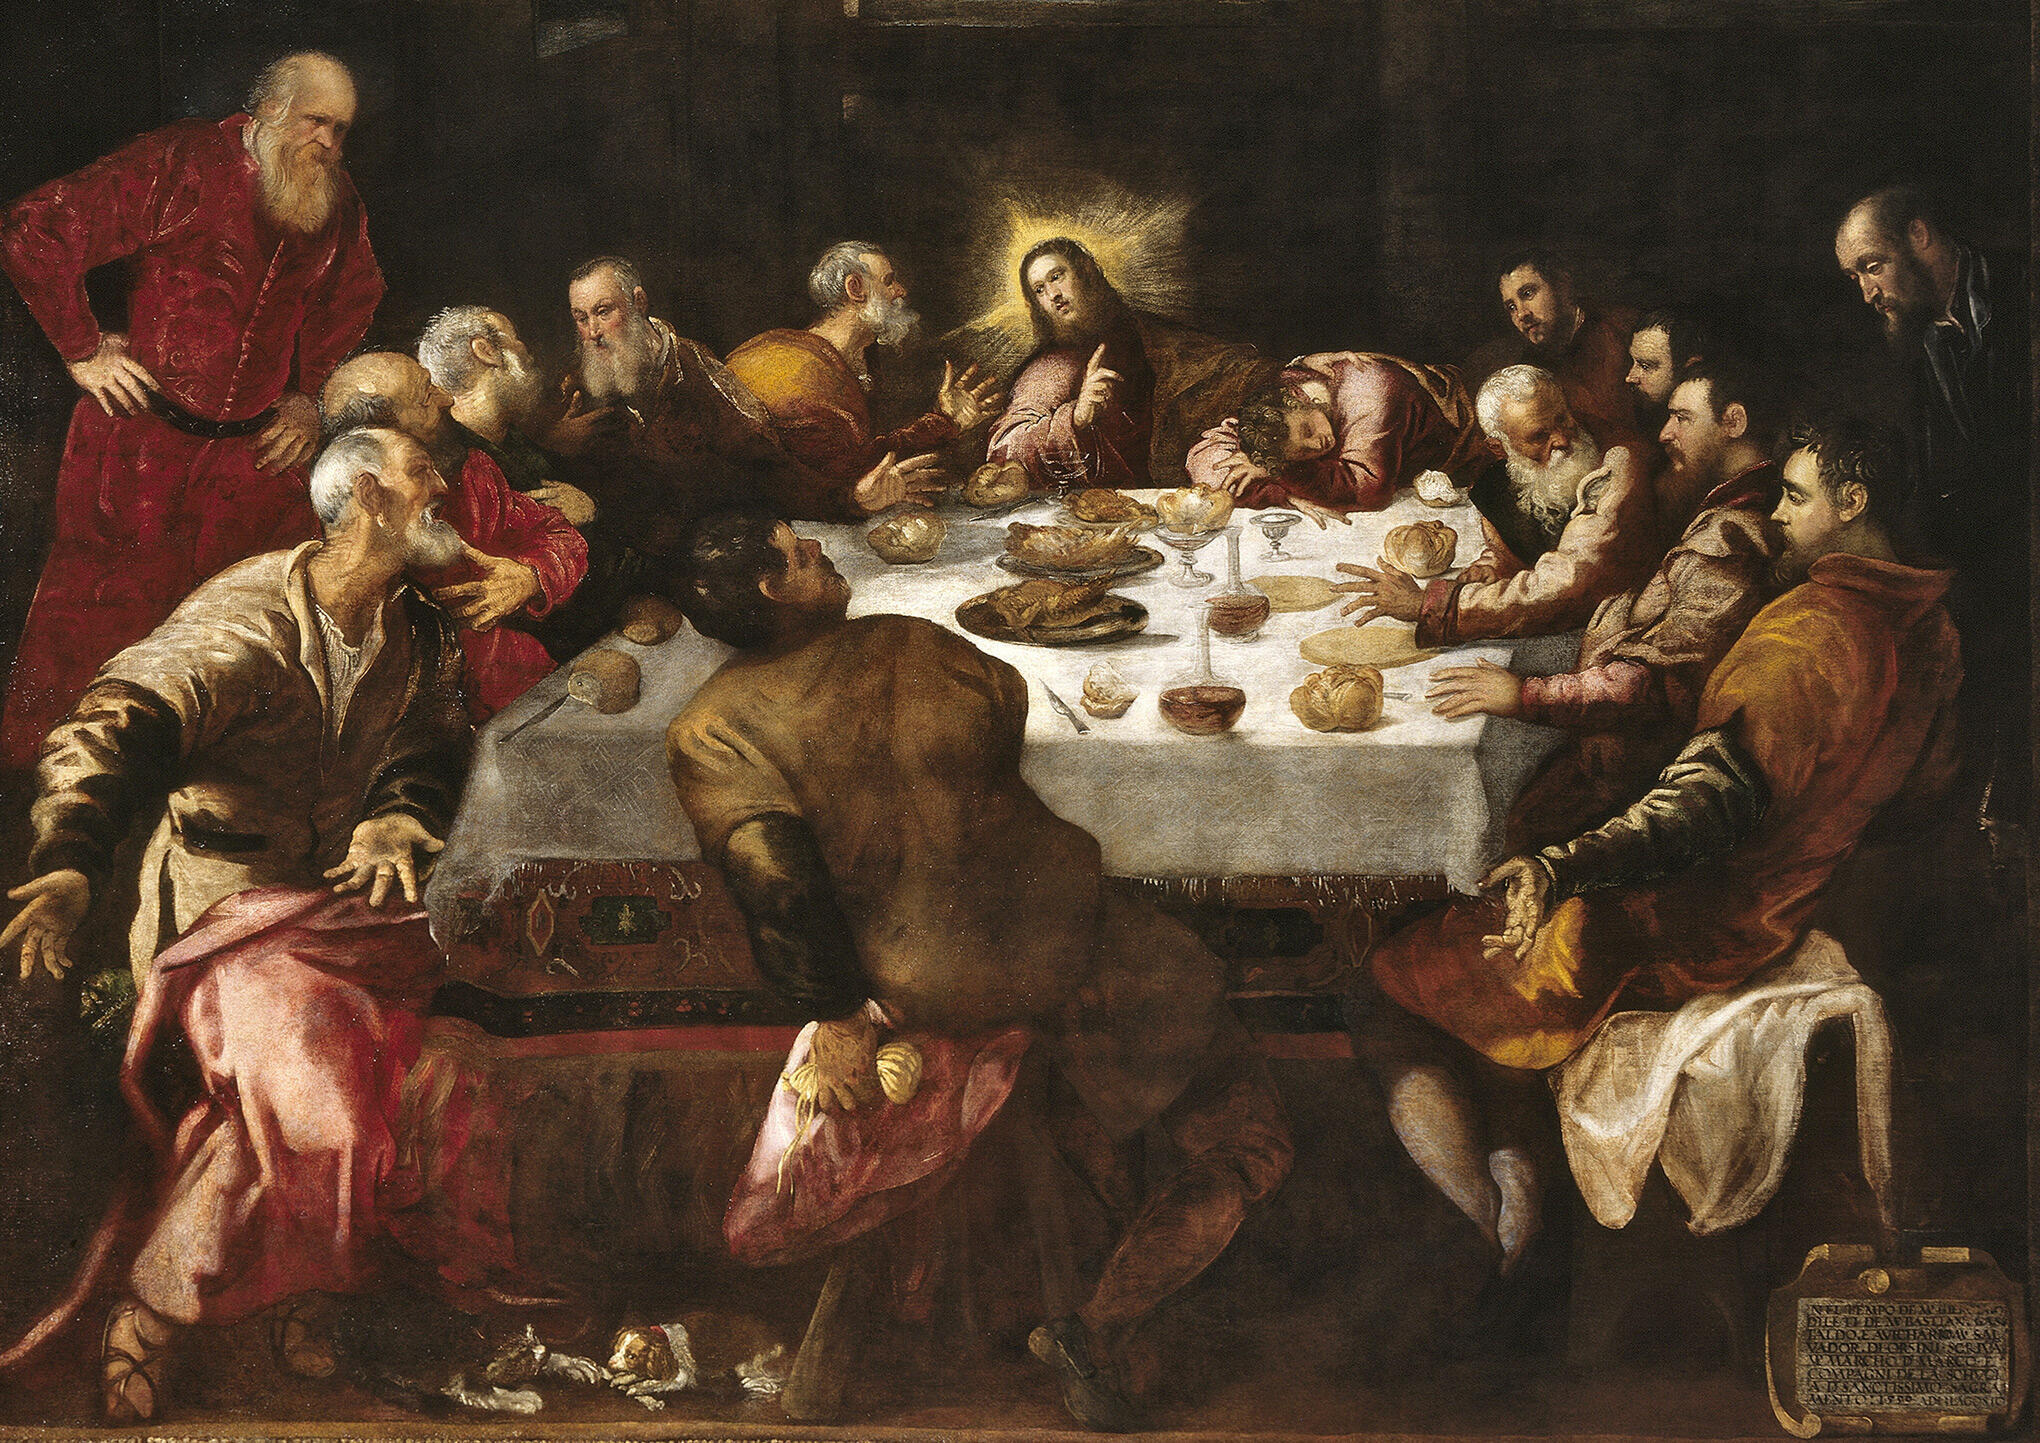 """The Last Supper"" by Jacopo Tintoretto, a hidden gem in the church of Saint-François-Xavier."